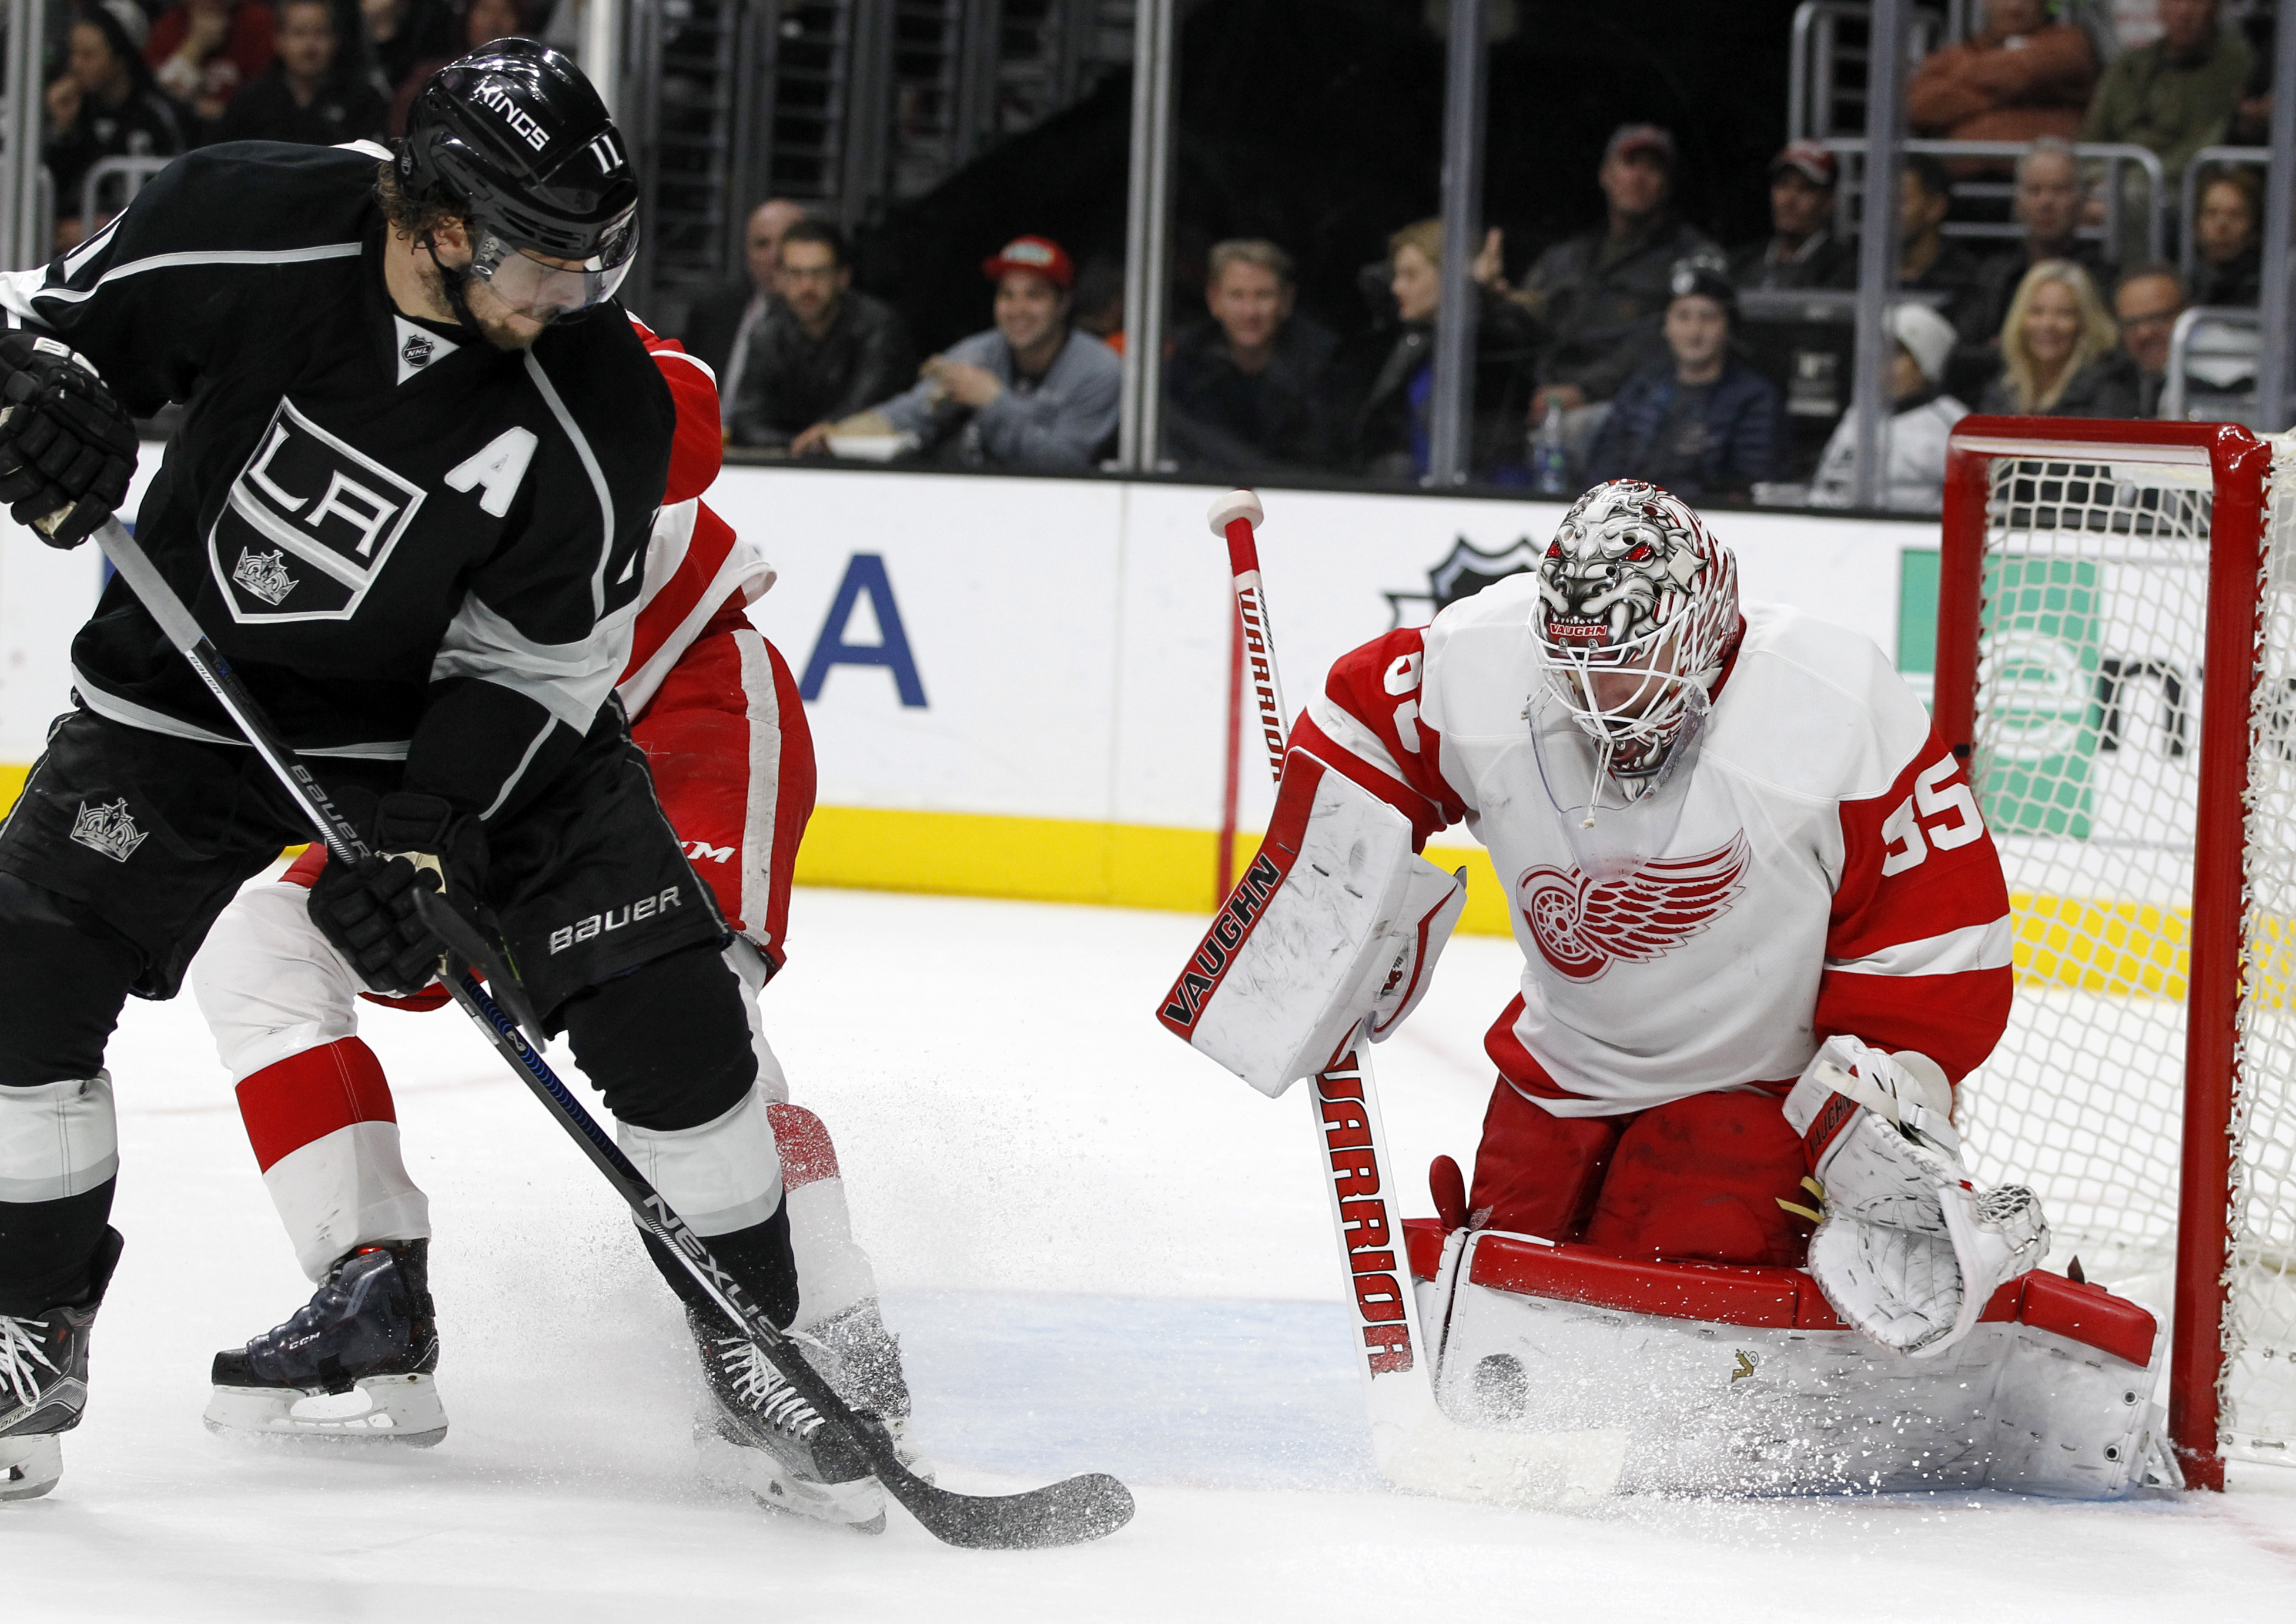 Detroit Red Wings goalie Jimmy Howard, right, blocks a shot by Los Angeles Kings center Anze Kopitar, left, of Slovenia, during the second period of an NHL hockey game in Los Angeles, Monday, Jan. 11, 2016. (AP Photo/Alex Gallardo)